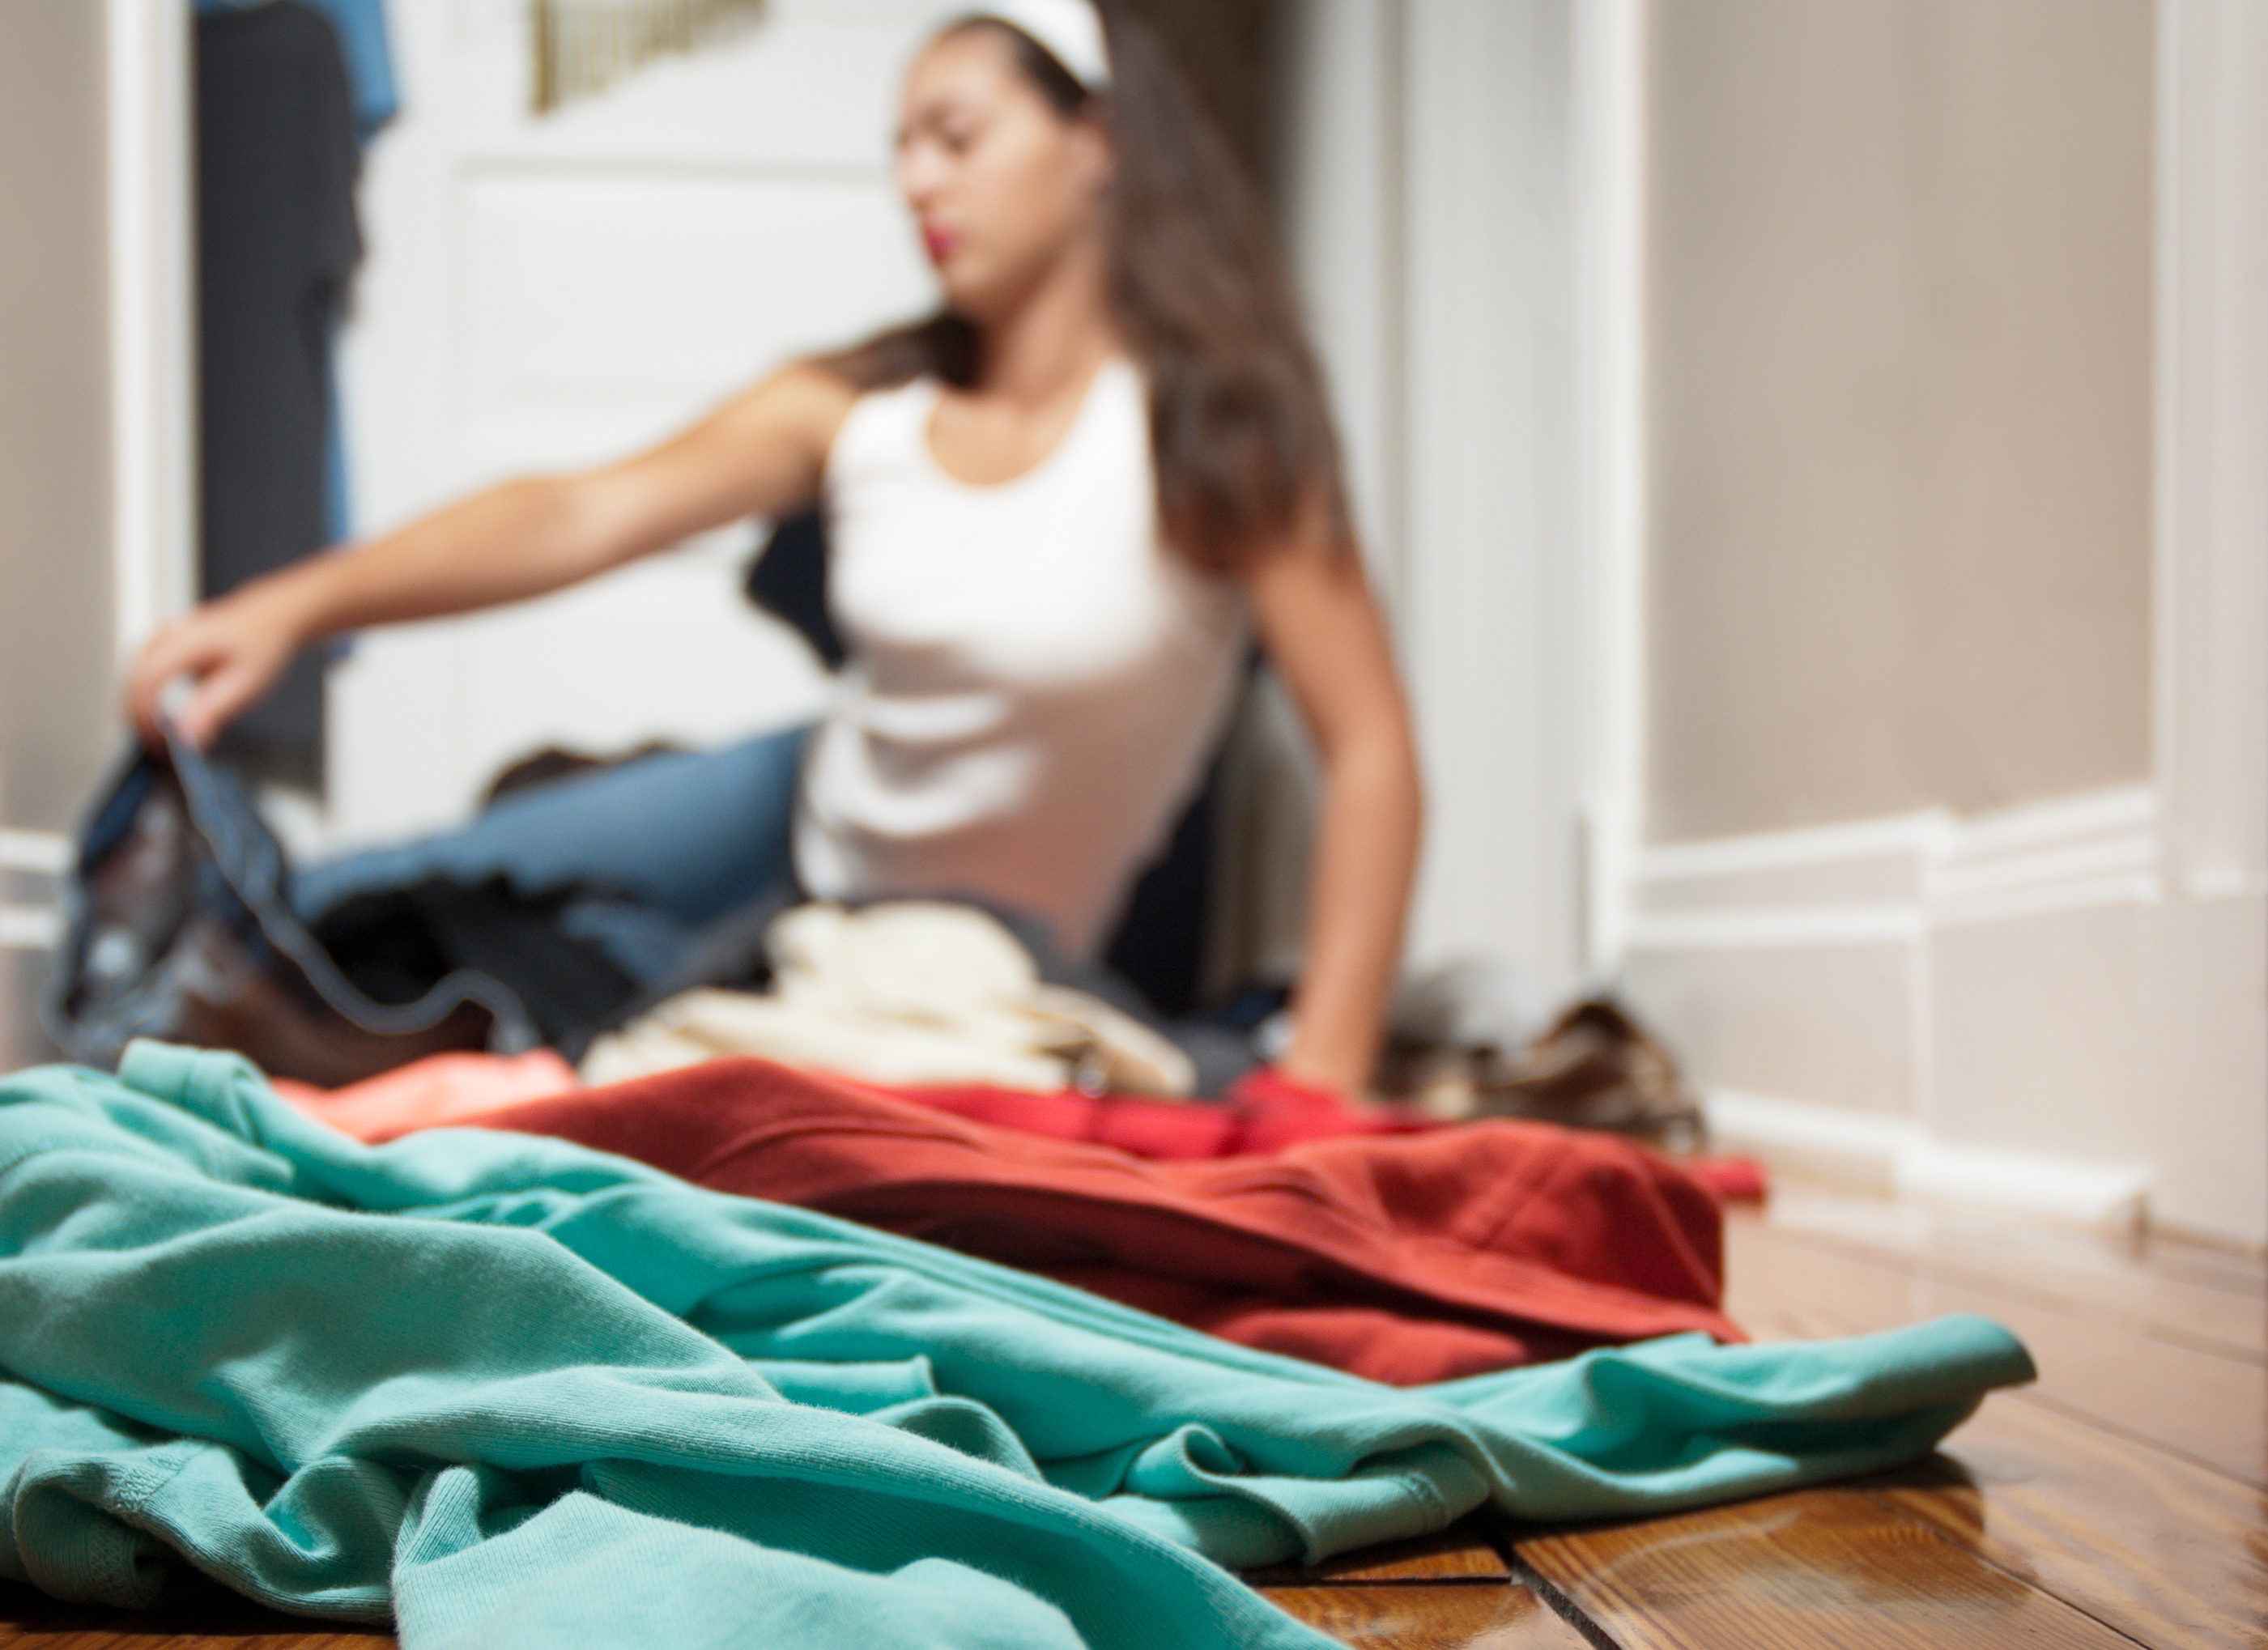 Closet Negotiations: When to Let Go